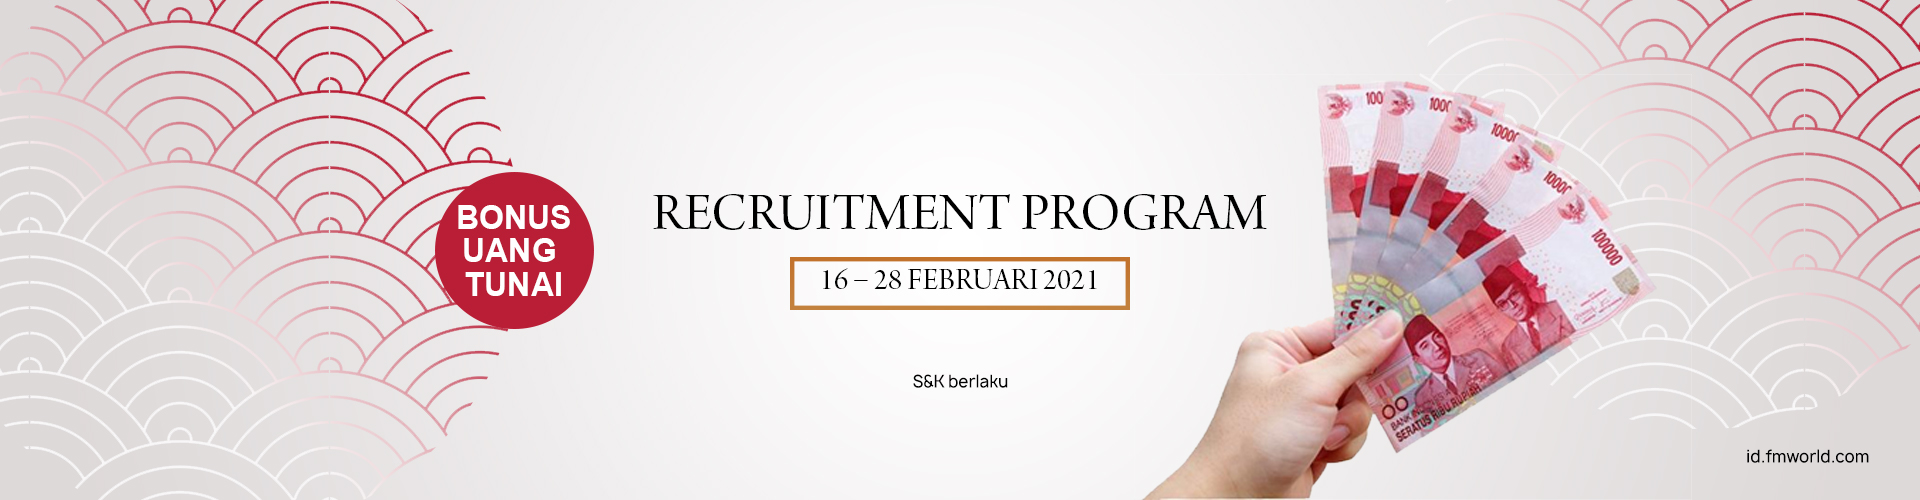 recruite februari 16-28